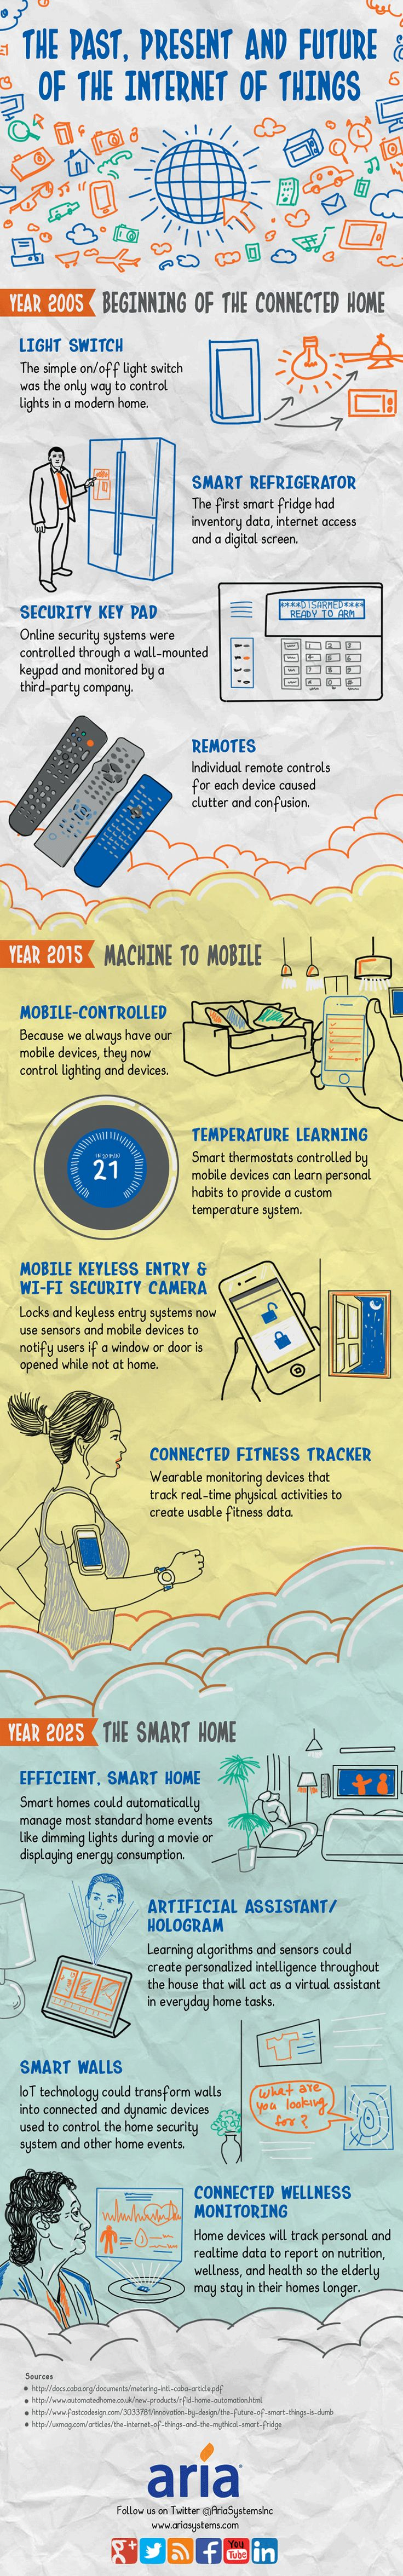 The Past, Present and Future of the Internet of Things #infographic #IOT #Technology [The Future of the Internet: http://futuristicnews.com/tag/internet/ & http://futuristicshop.com/category/future_internet/]